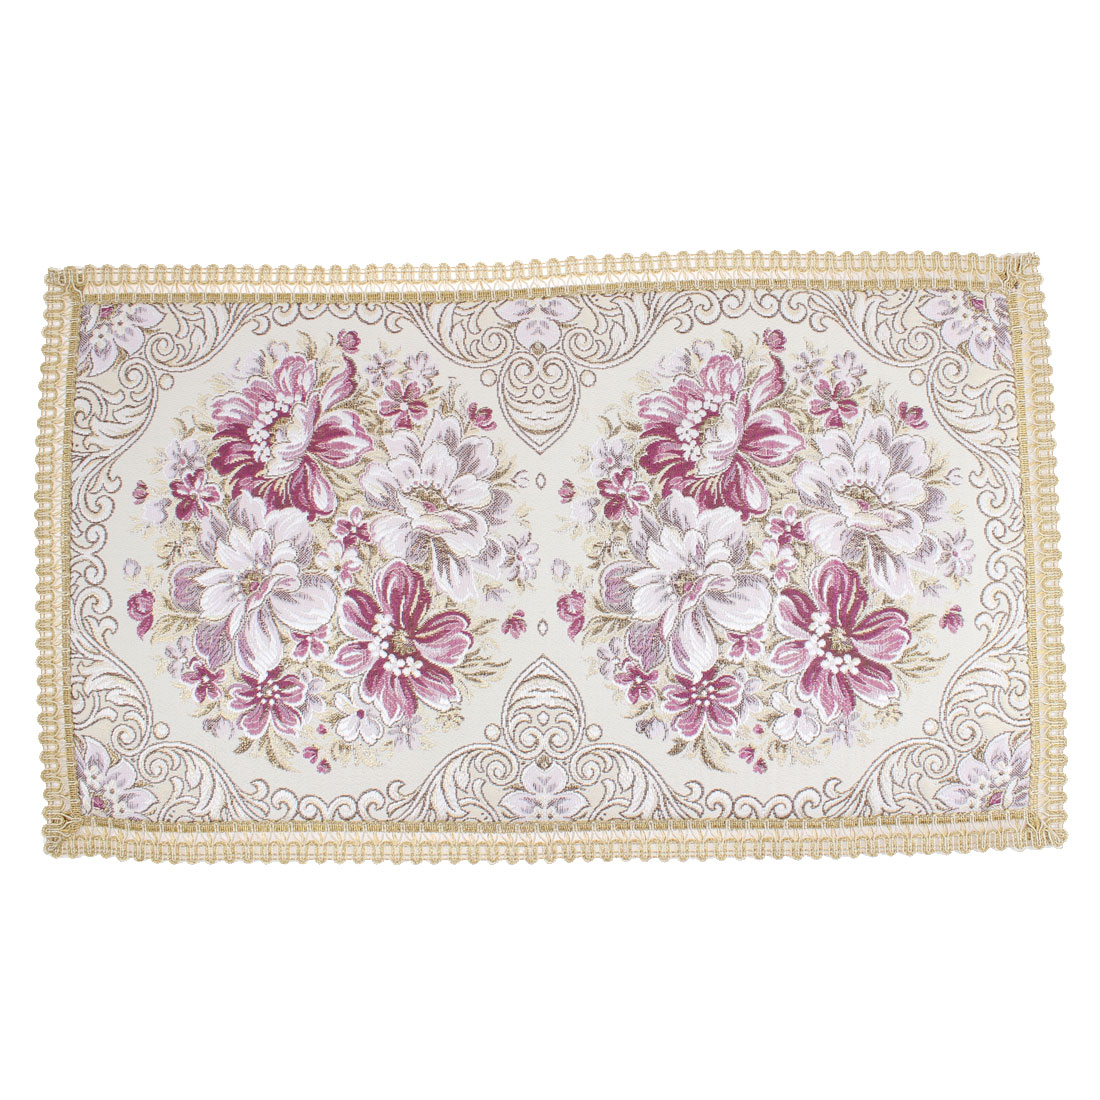 Flower Embroidery Table Cup Mat Placemat 55.5 x 32cm